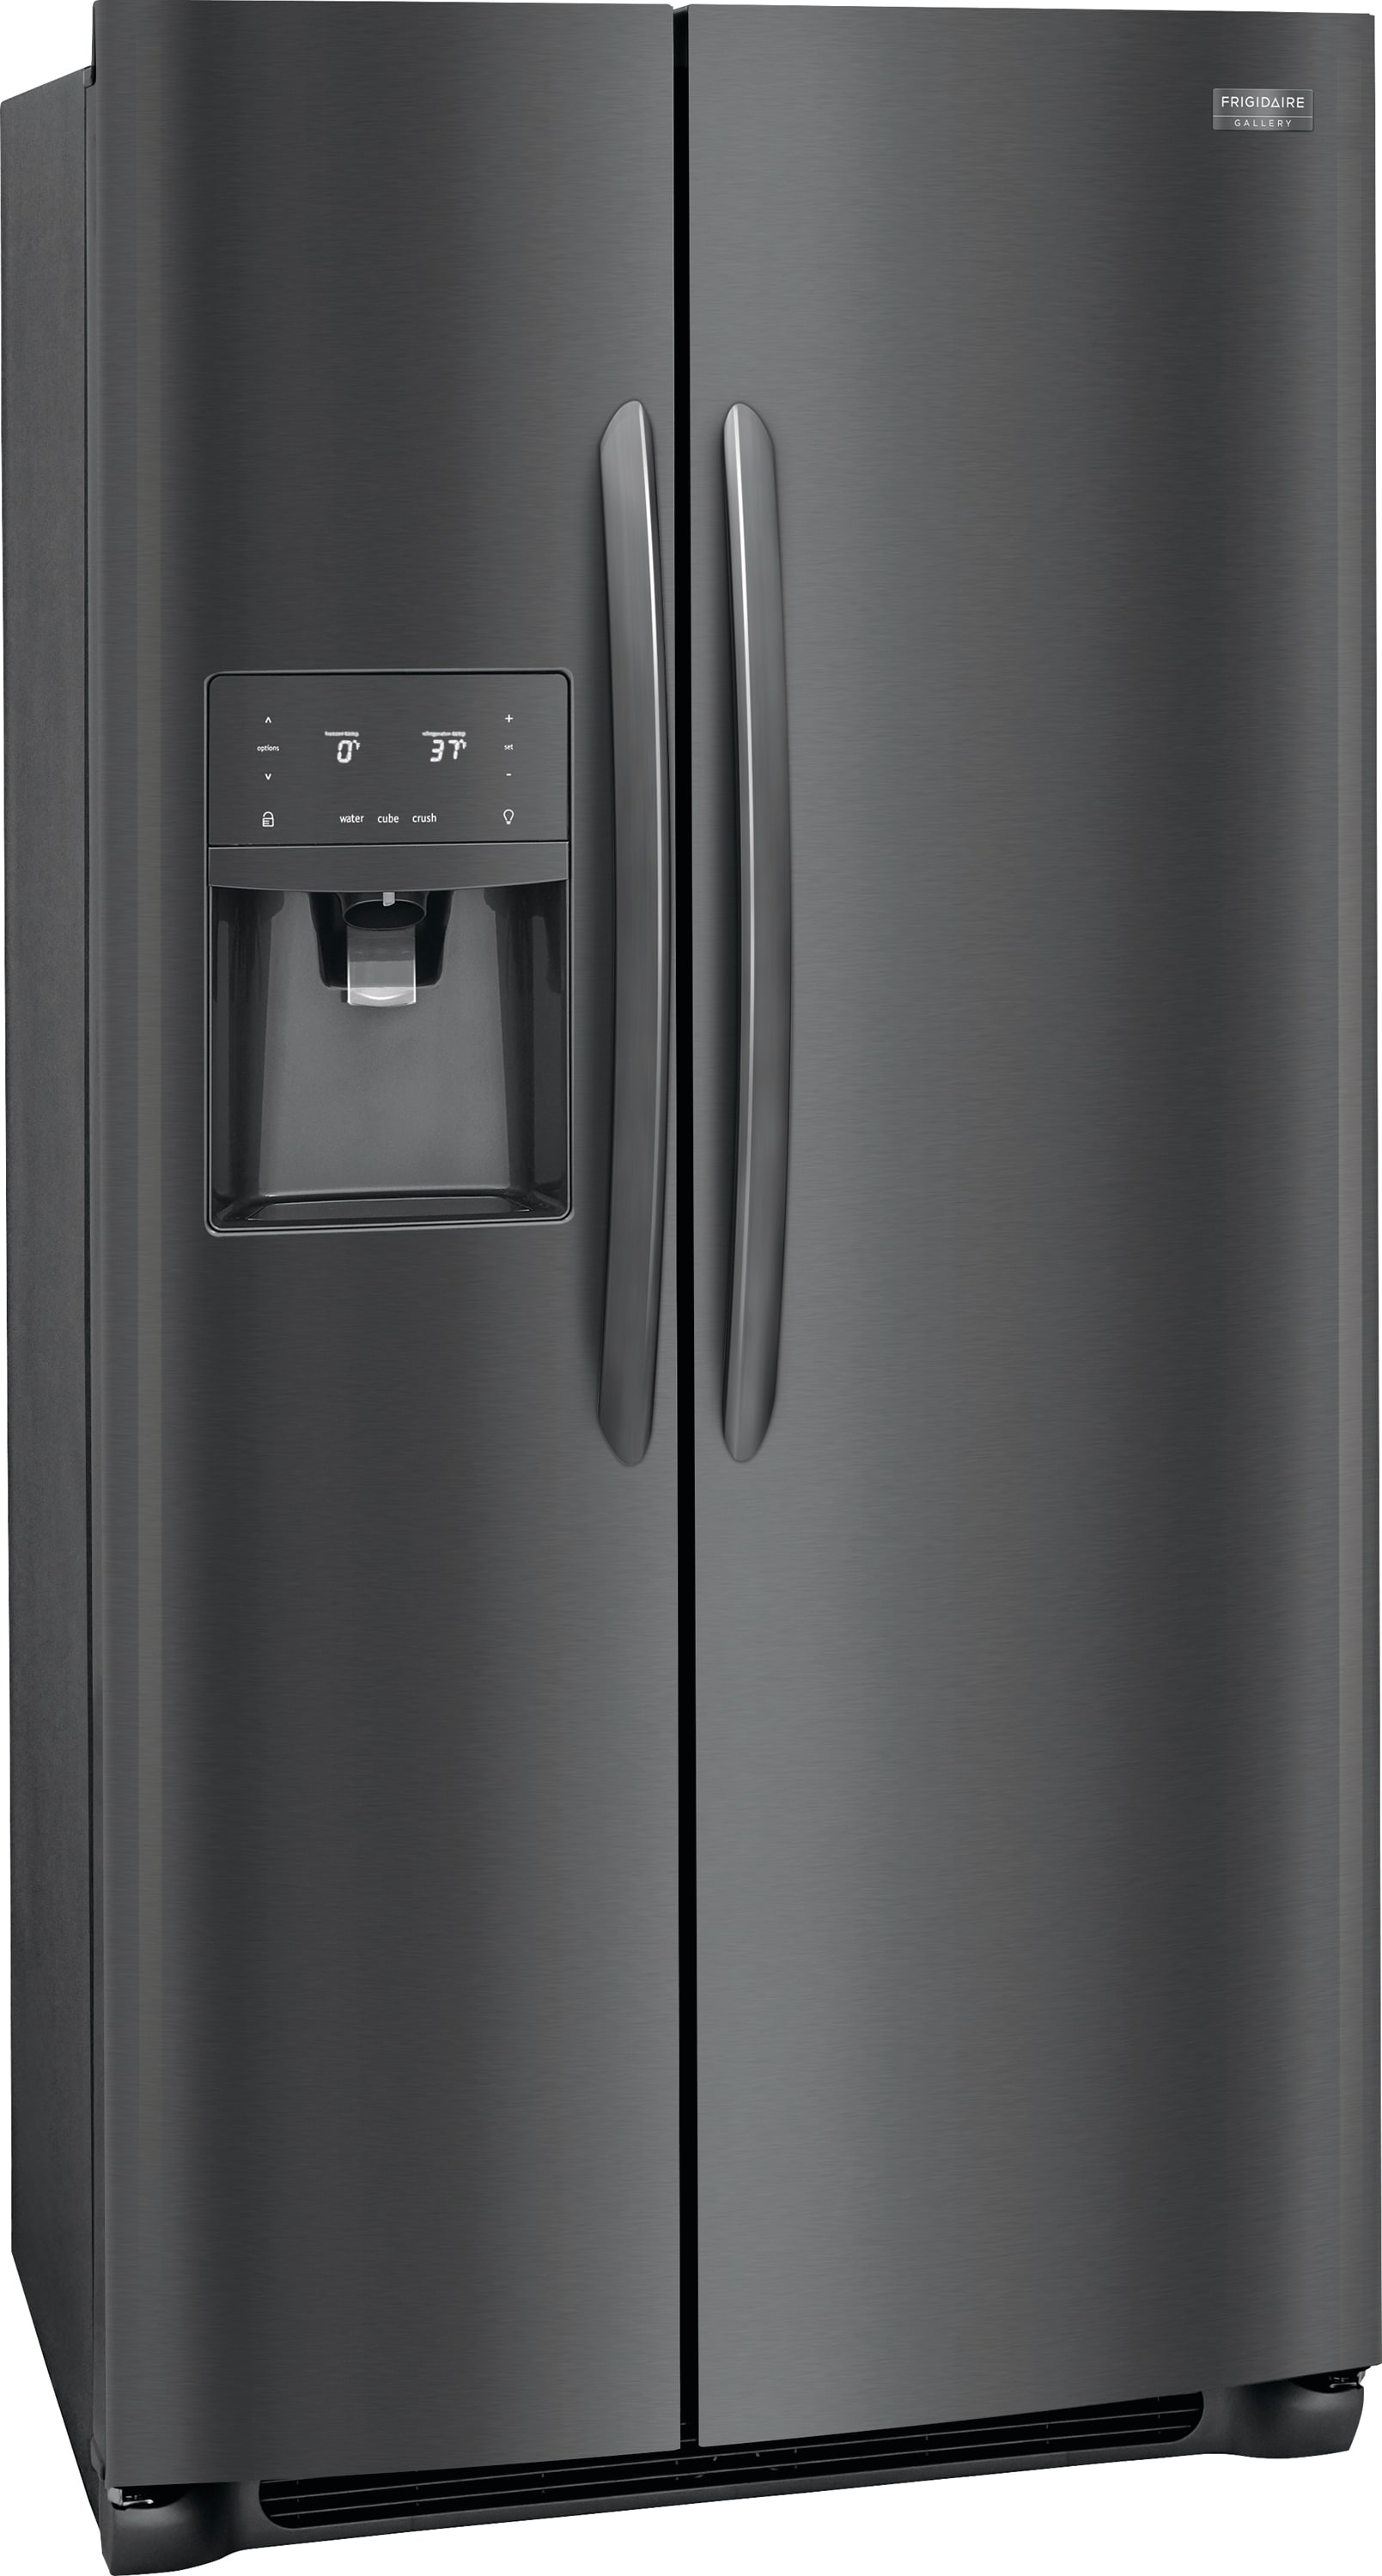 Model: FGSS2635TD | 25.5 Cu. Ft. Side-by-Side Refrigerator